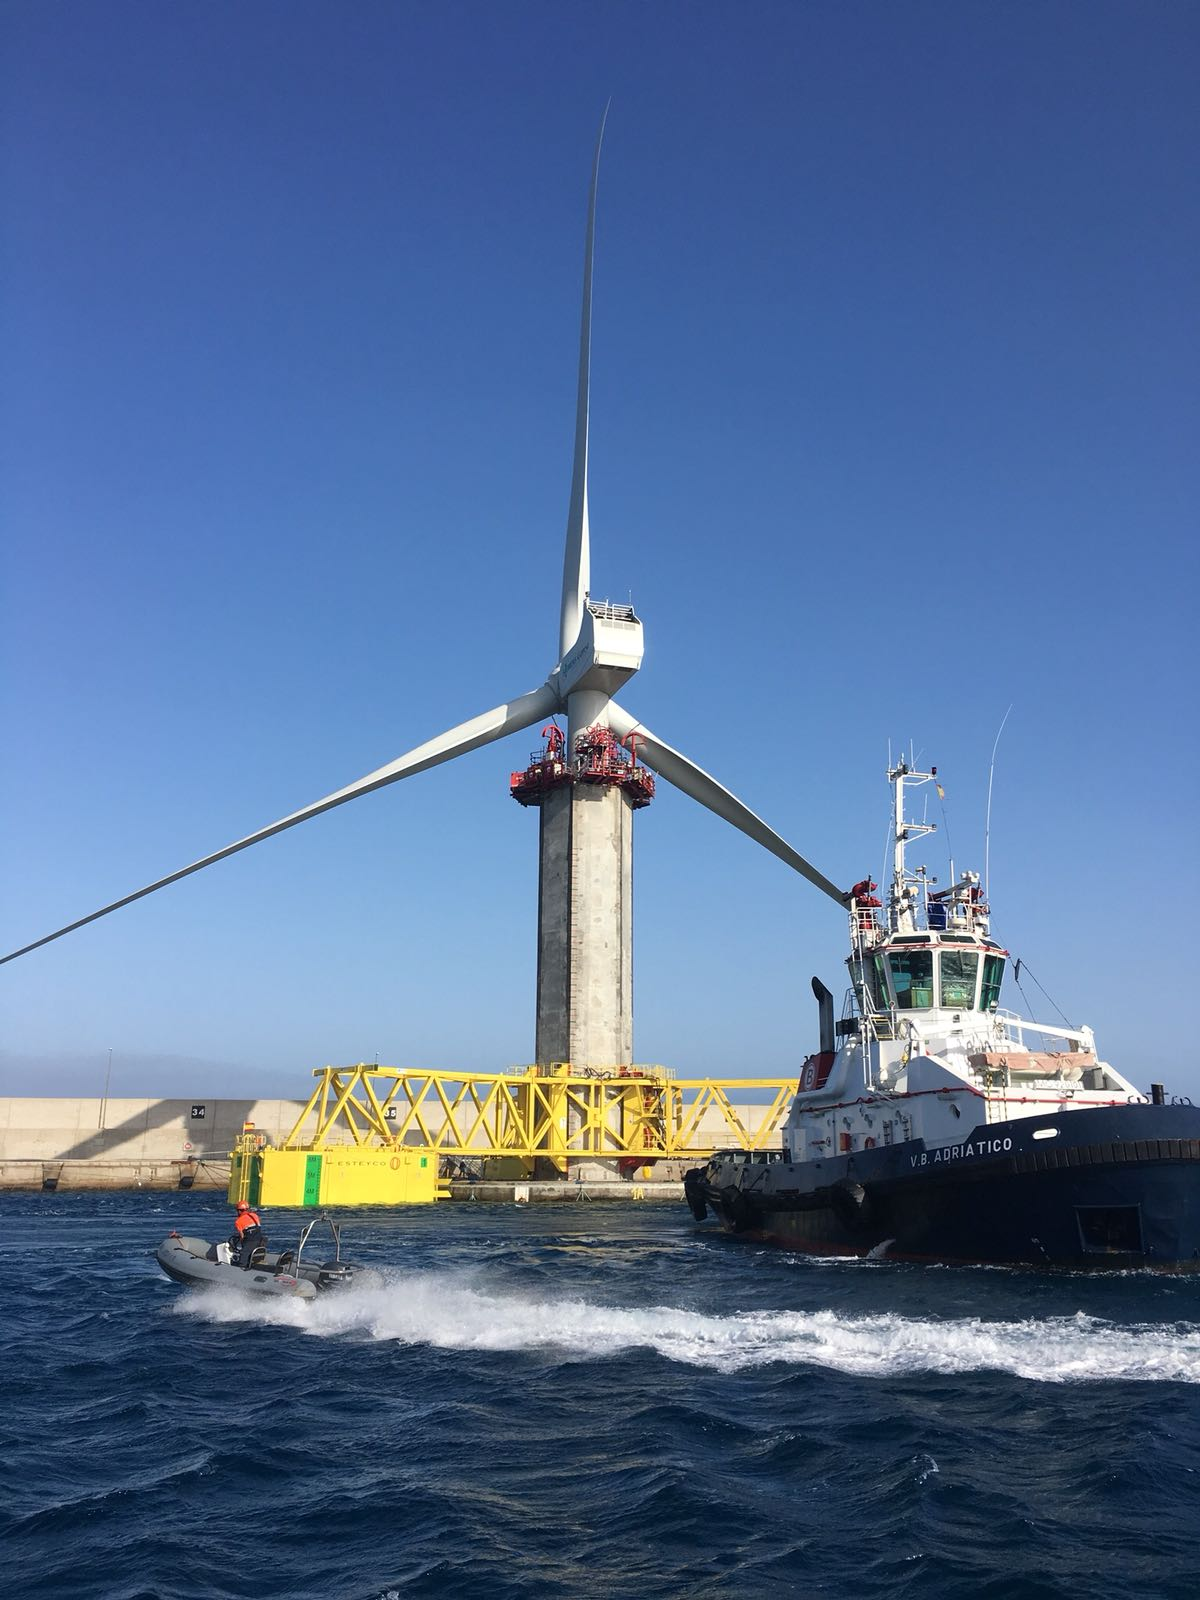 Esteyco's ELISA/ELICAN project as one of EU's successful funded projects in the field of clean energy innovation